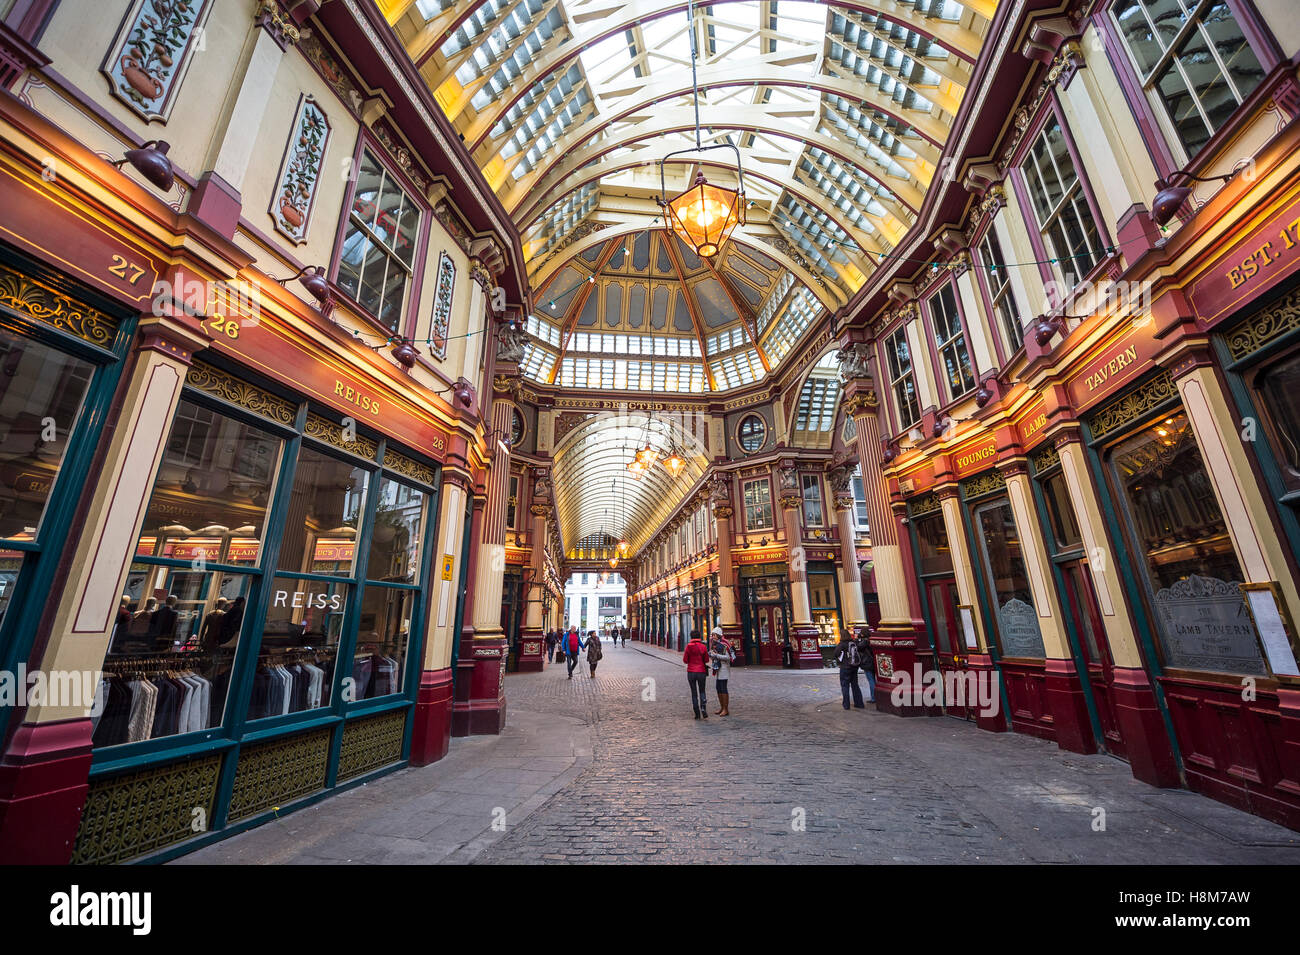 LONDON - NOVEMBER 3, 2016: Autumn light filters through the Victorian arcade of the Leadenhall Market, built in - Stock Image